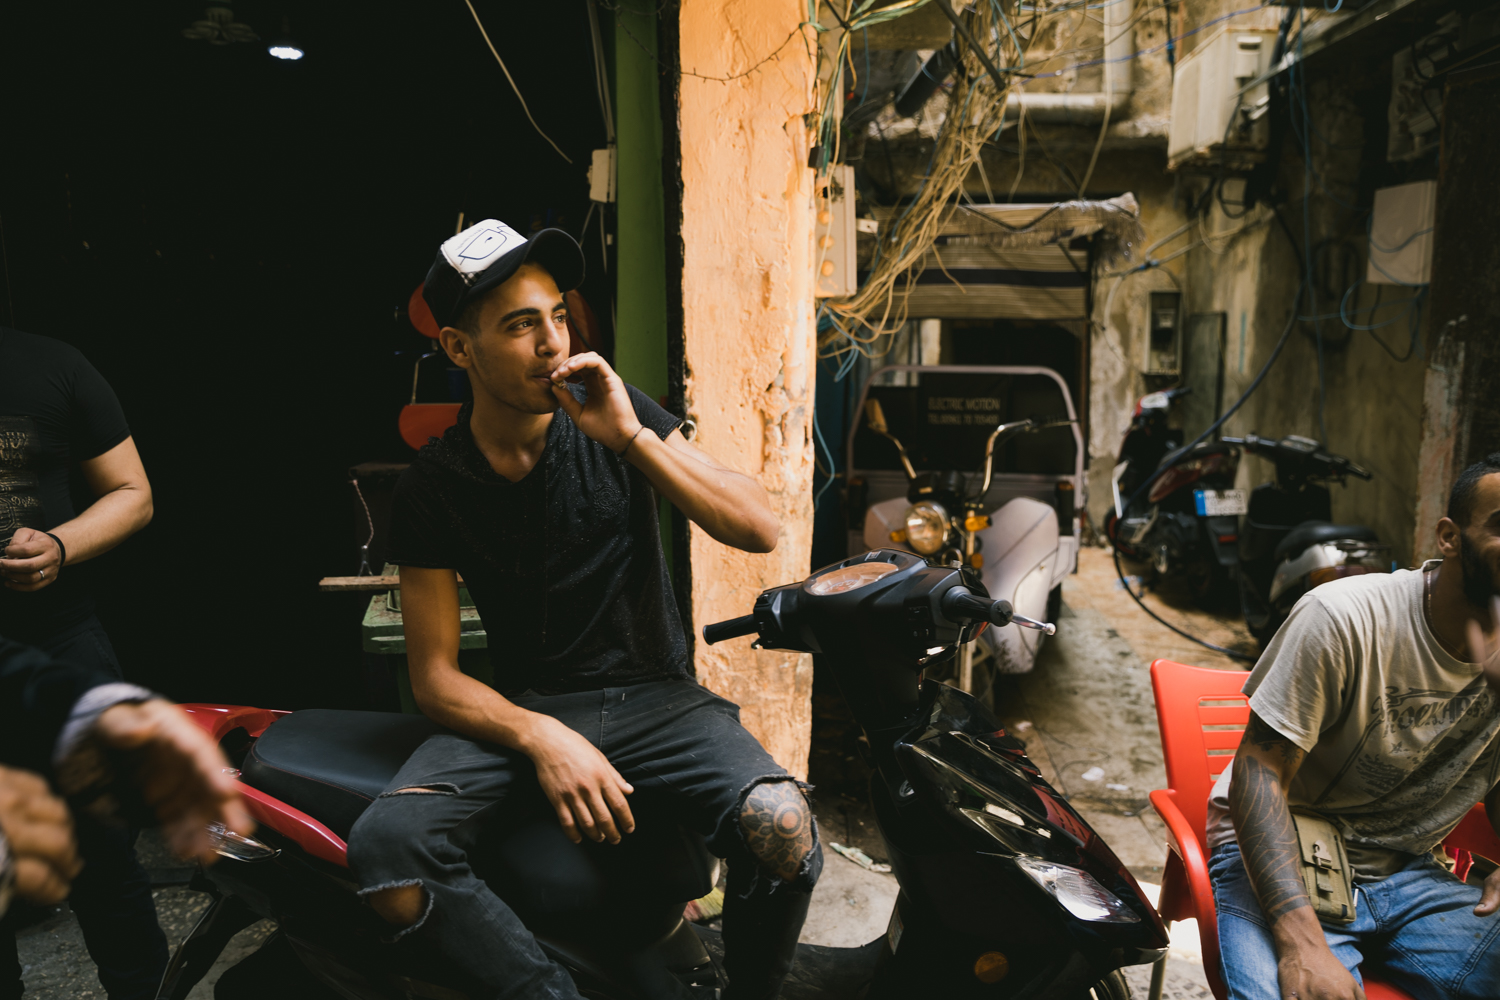 A young Palestinian man smokes a cigarette while hanging with friends during the middle of the day. Due to complications with the legal and social status of Palestinians in Lebanon, most people in the camps struggle to find work, and thus spend good portions of the day in the alleys and streets as their homes are often inhabitable in the midday heat.